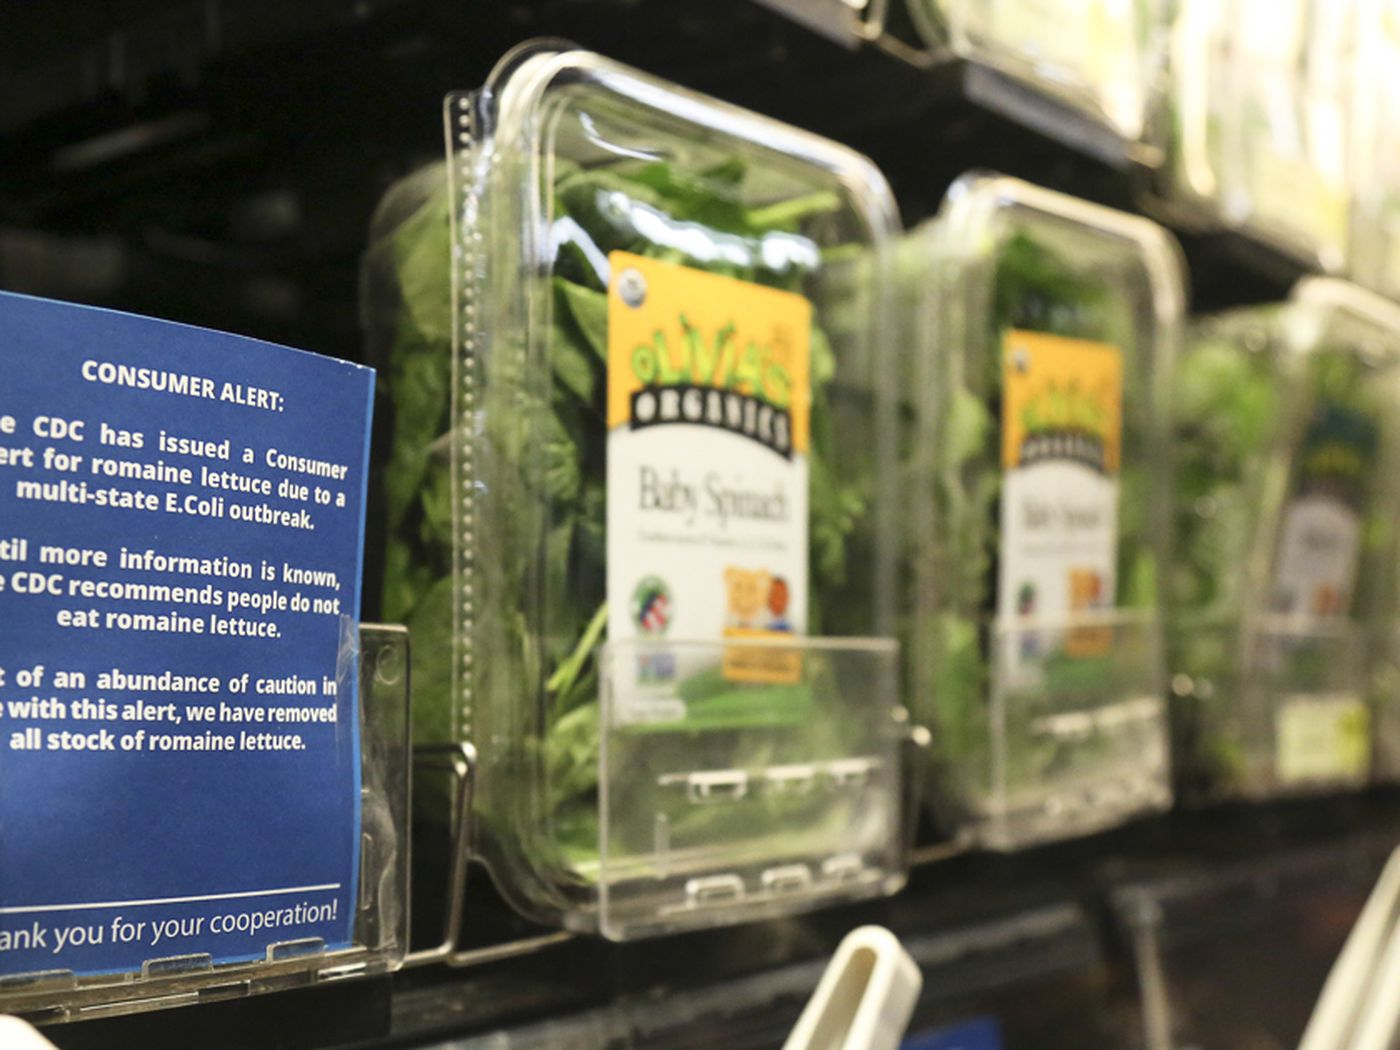 Lettuce Warnings For Christmas 2021 Jay Evensen Why The Romaine Lettuce Recall Didn T Matter In The First Place Deseret News